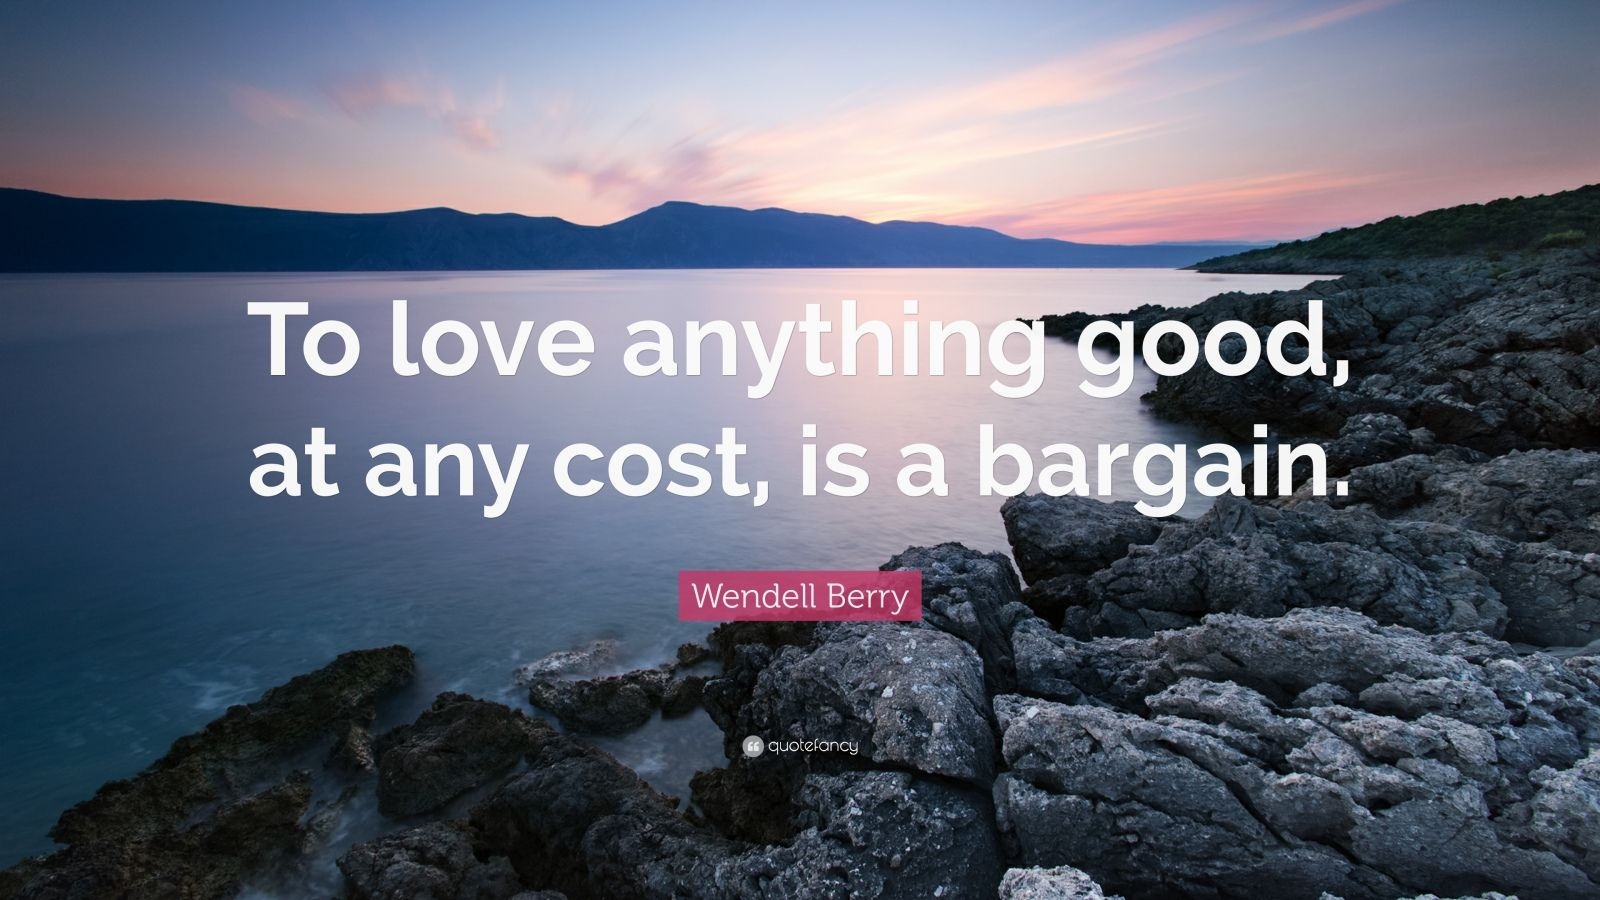 """""""It is not a terrible thing to love the world, knowing that the world is always passing and irrecoverable, to be known only in loss. To love anything good, at any cost, is a bargain."""" Wendell Berry"""